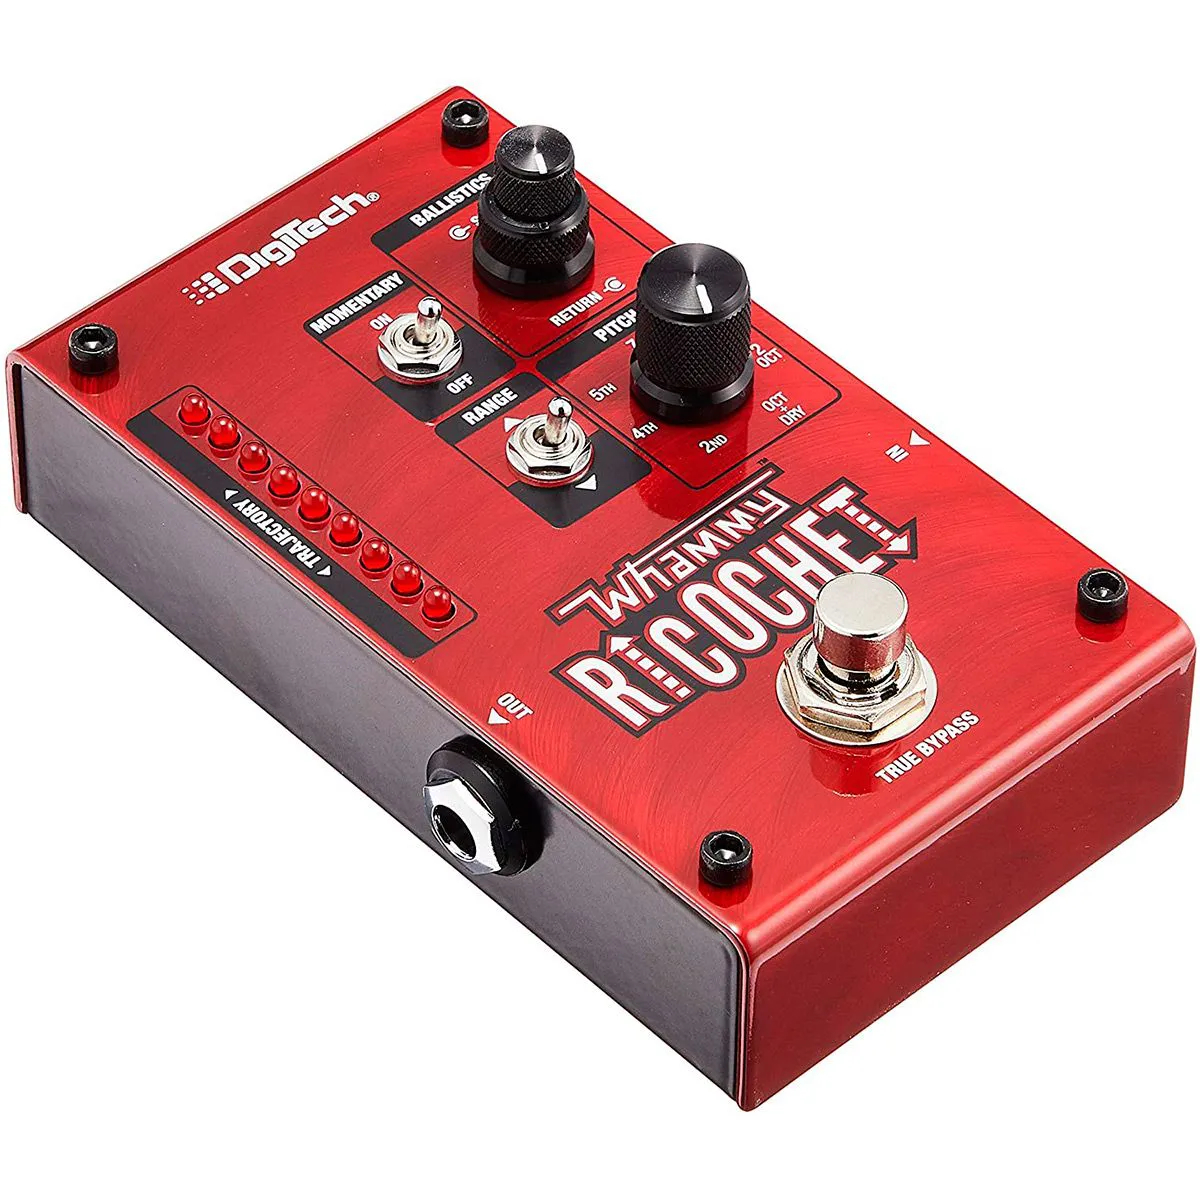 Pedal de Efeitos Digitech Whammy Ricochet Pitch Shift